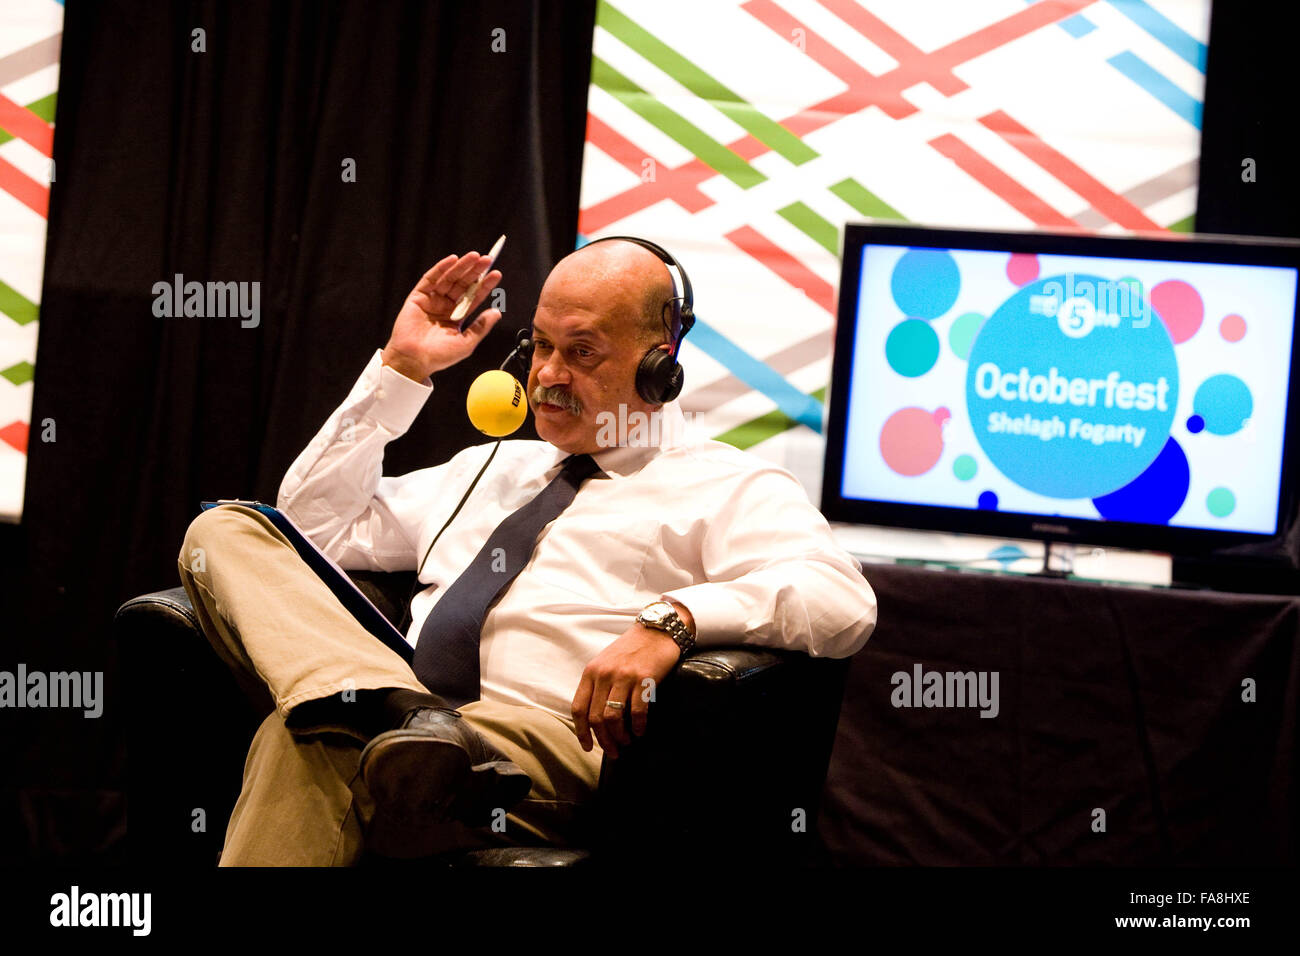 BBC Radio 5 Live Octoberfest in Sheffield Friday John Pienaar Stock     BBC Radio 5 Live Octoberfest in Sheffield Friday John Pienaar